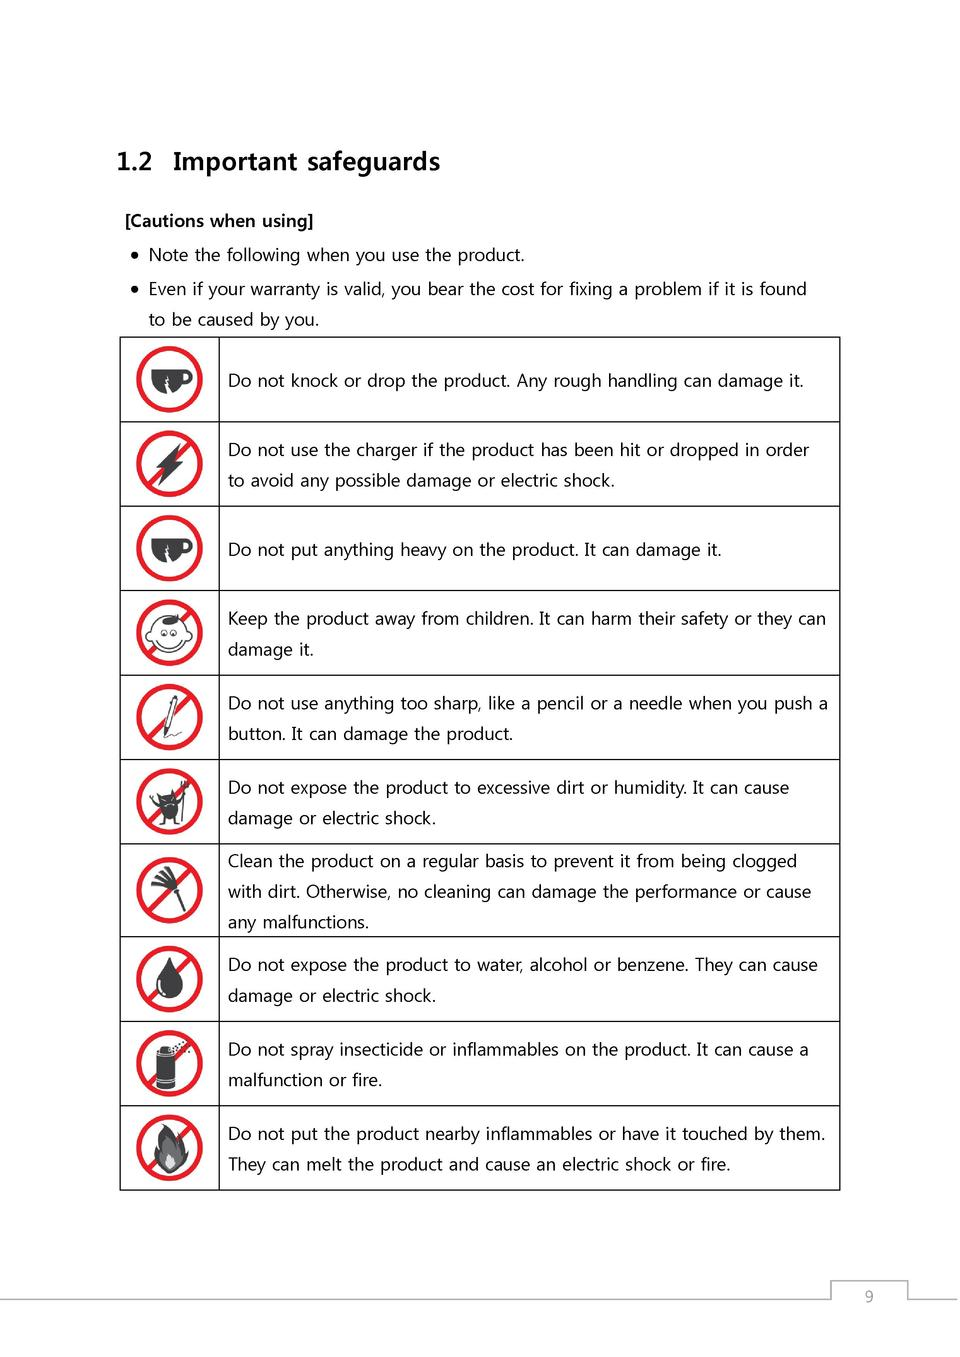 1.2 Important safeguards  Cautions when using      Note the following when you use the product.     Even if your warranty ...